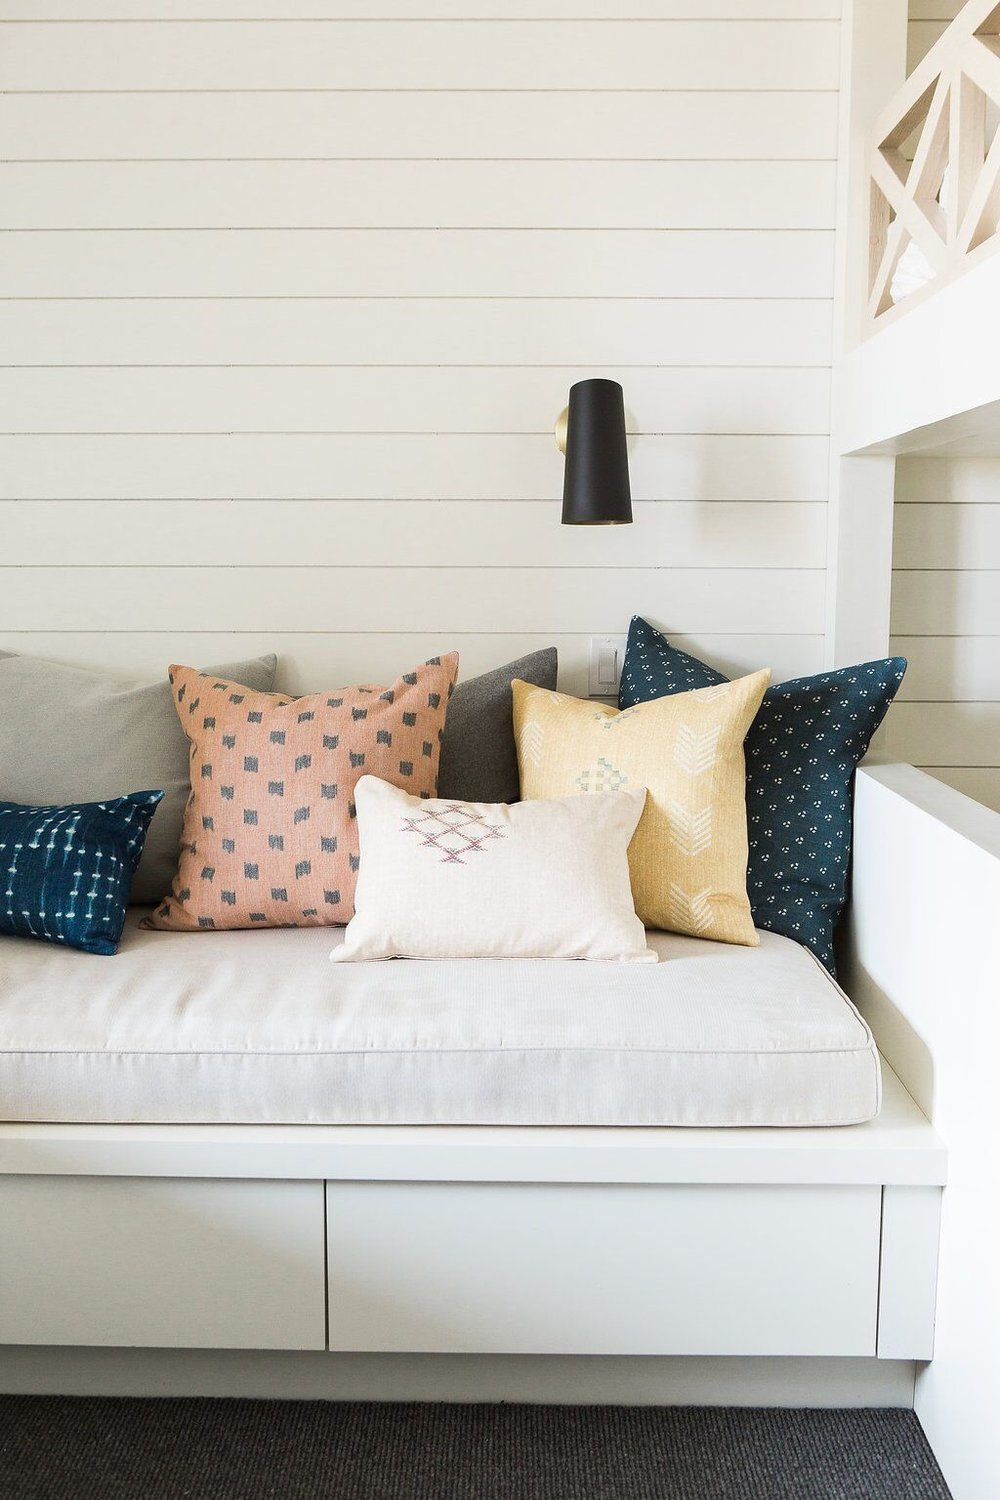 Built in day bed with shiplap walls